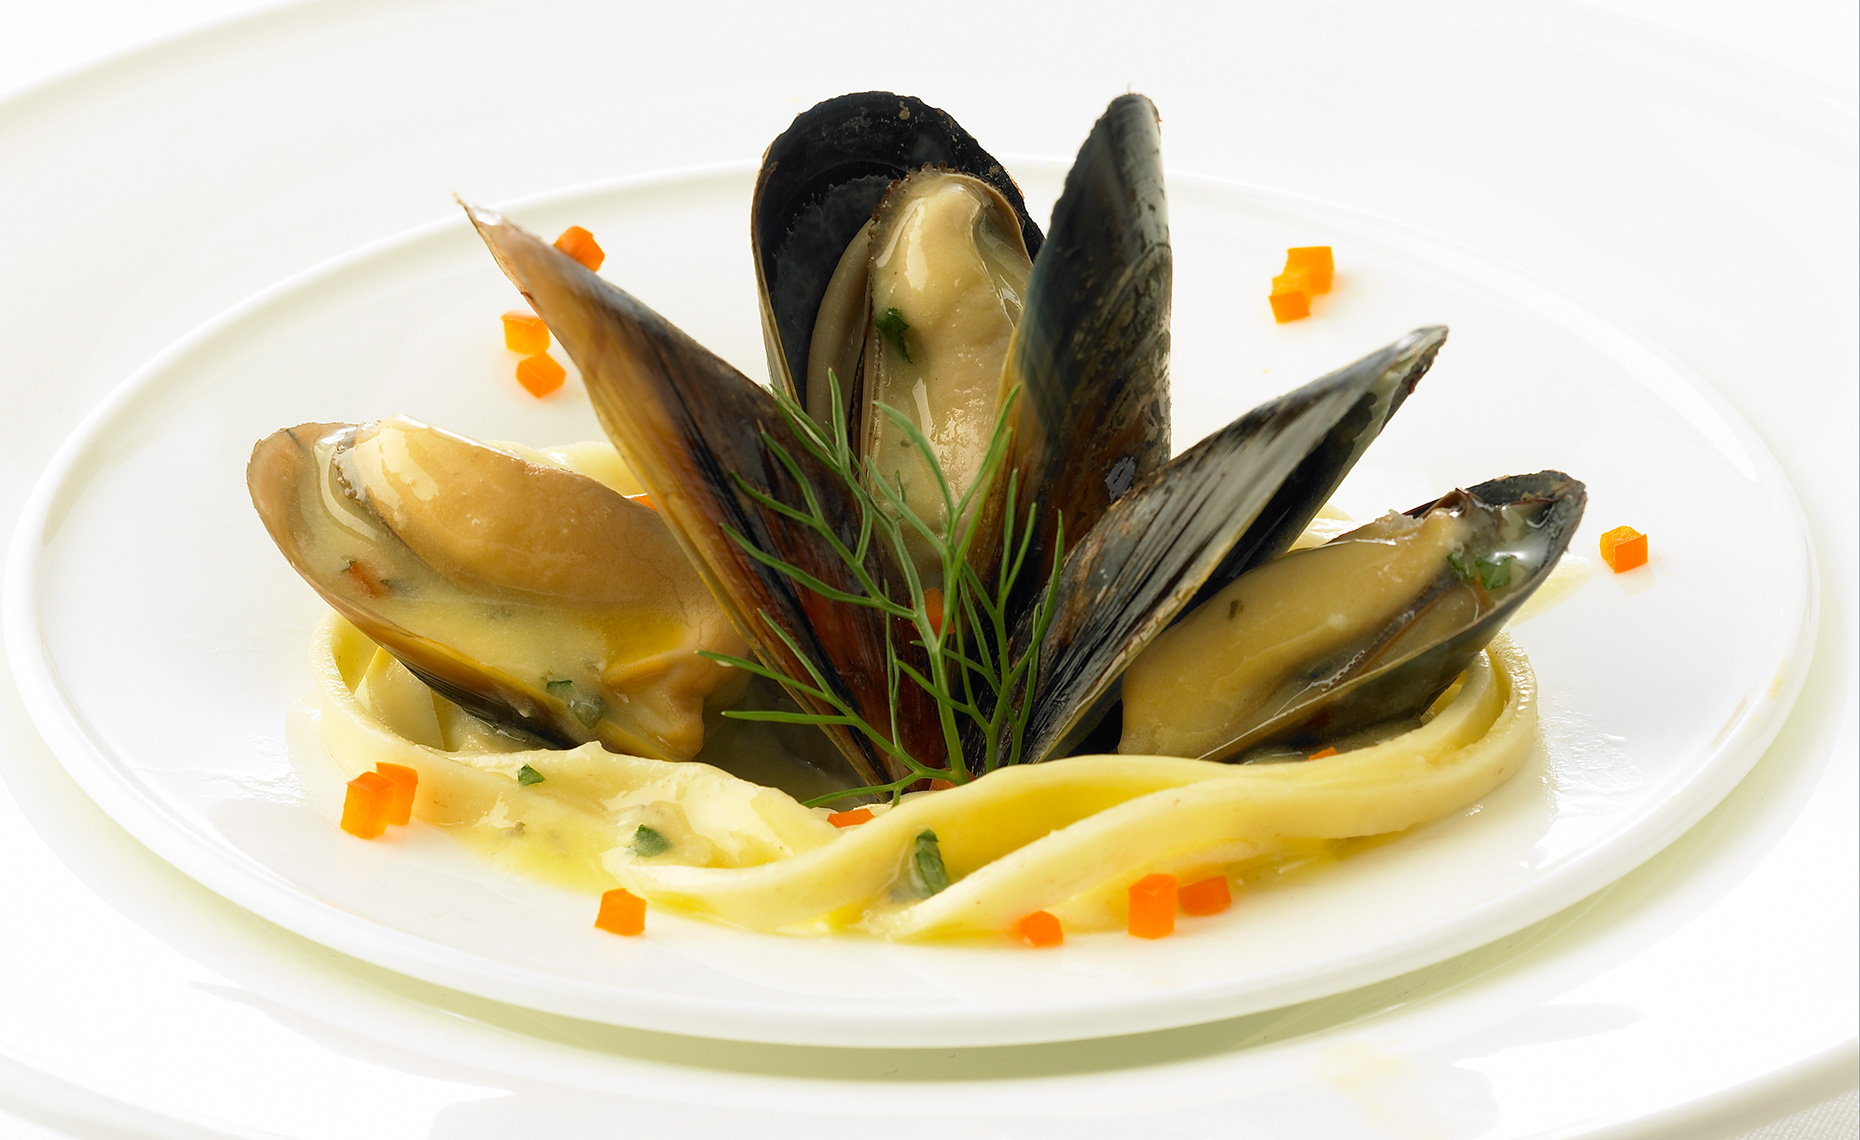 Food Photographer, Seafood Photography | Pohuski Studios,  Garlic Butter Mussels